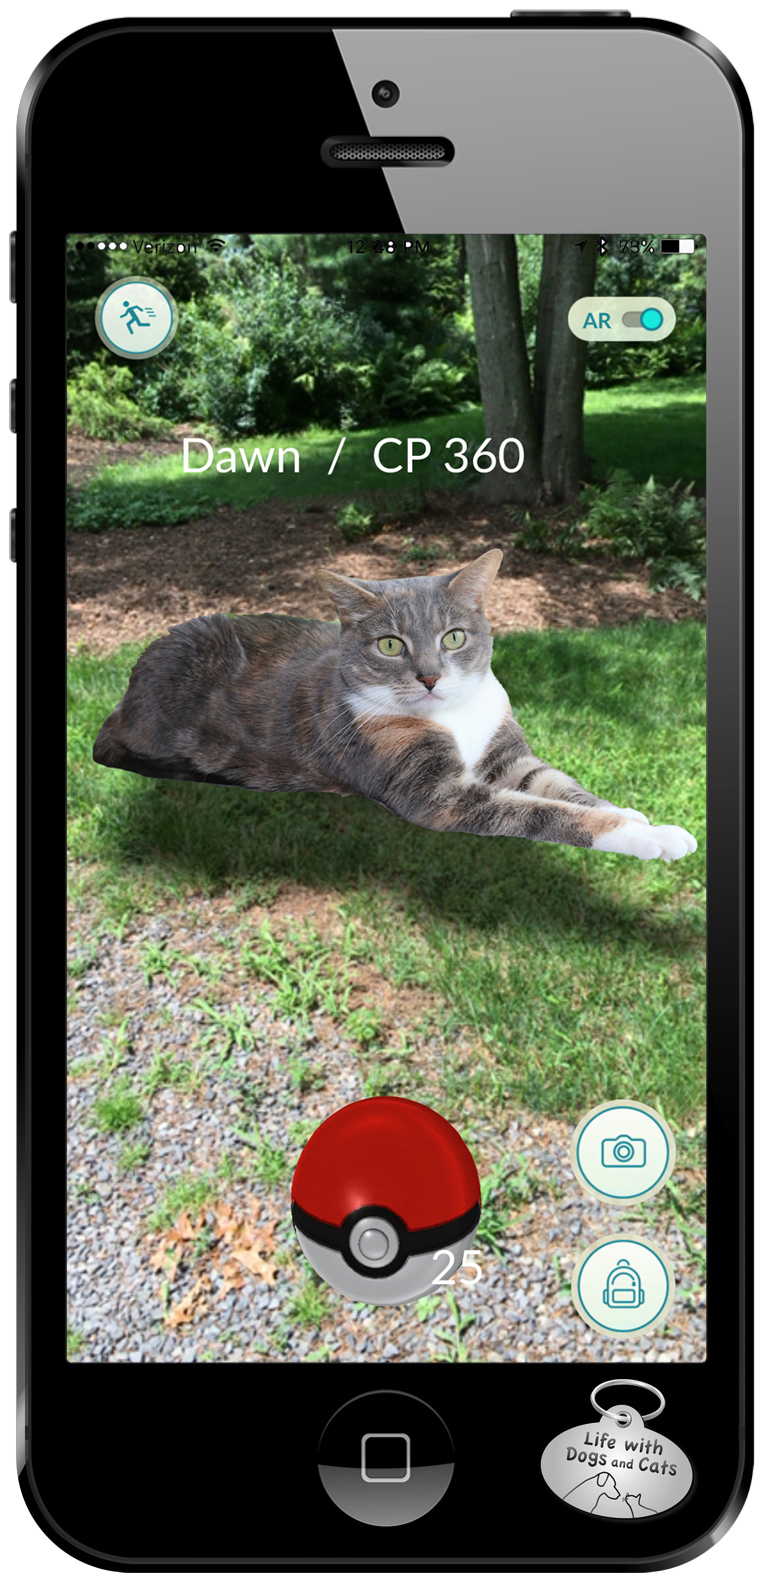 Cats are Pokemon Go Dawn